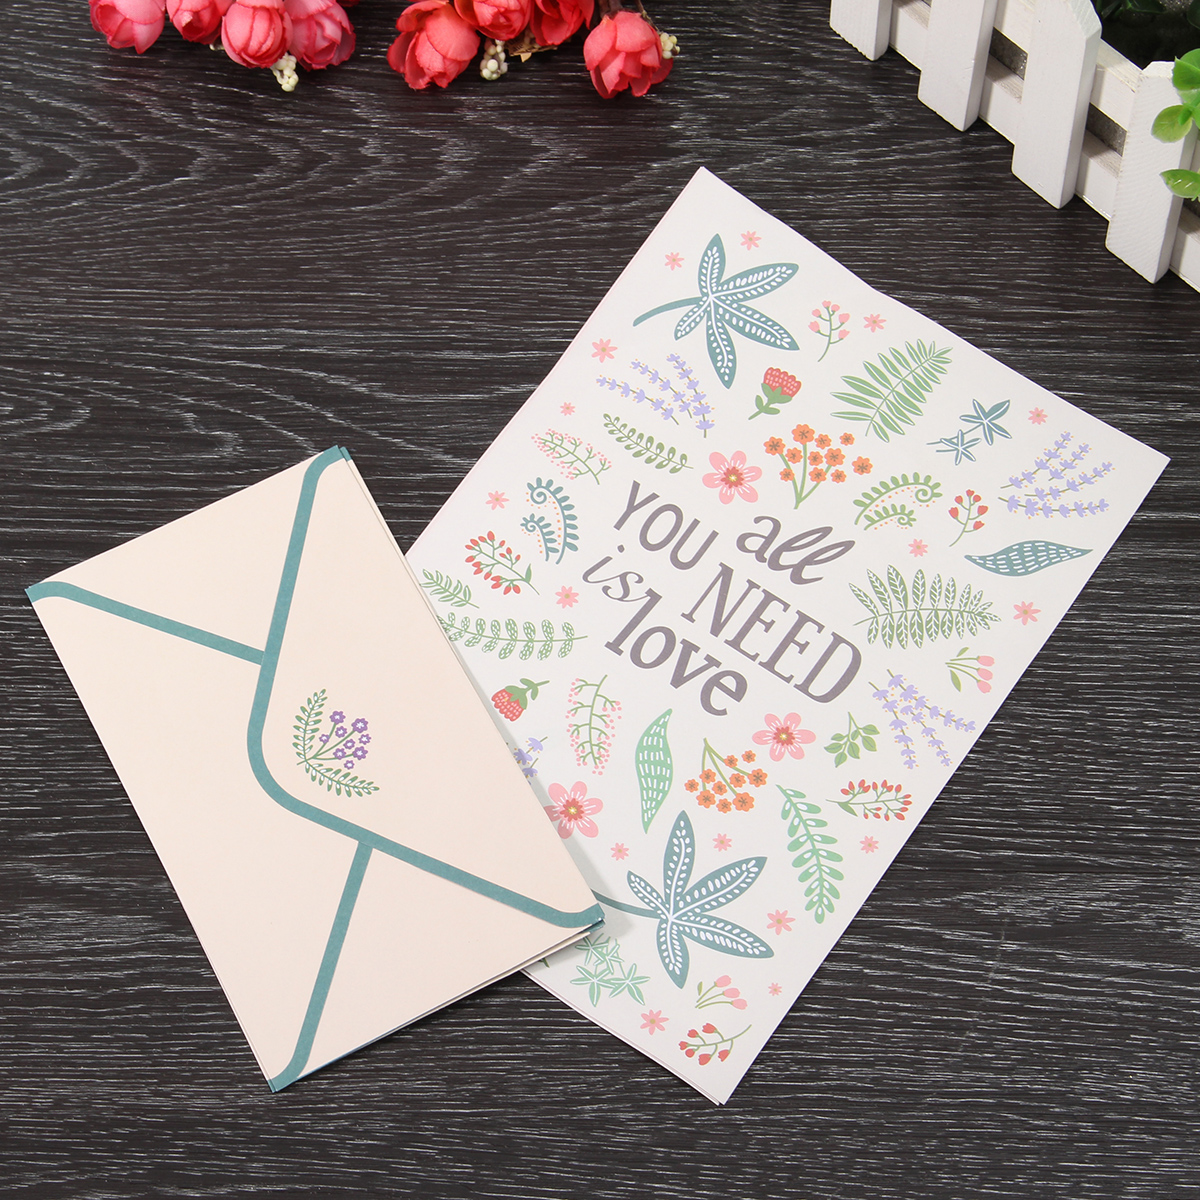 Cute Finely Flower Animal Letter pad Writing Paper Office School Supplie 4 paper and 2 envelopes Set